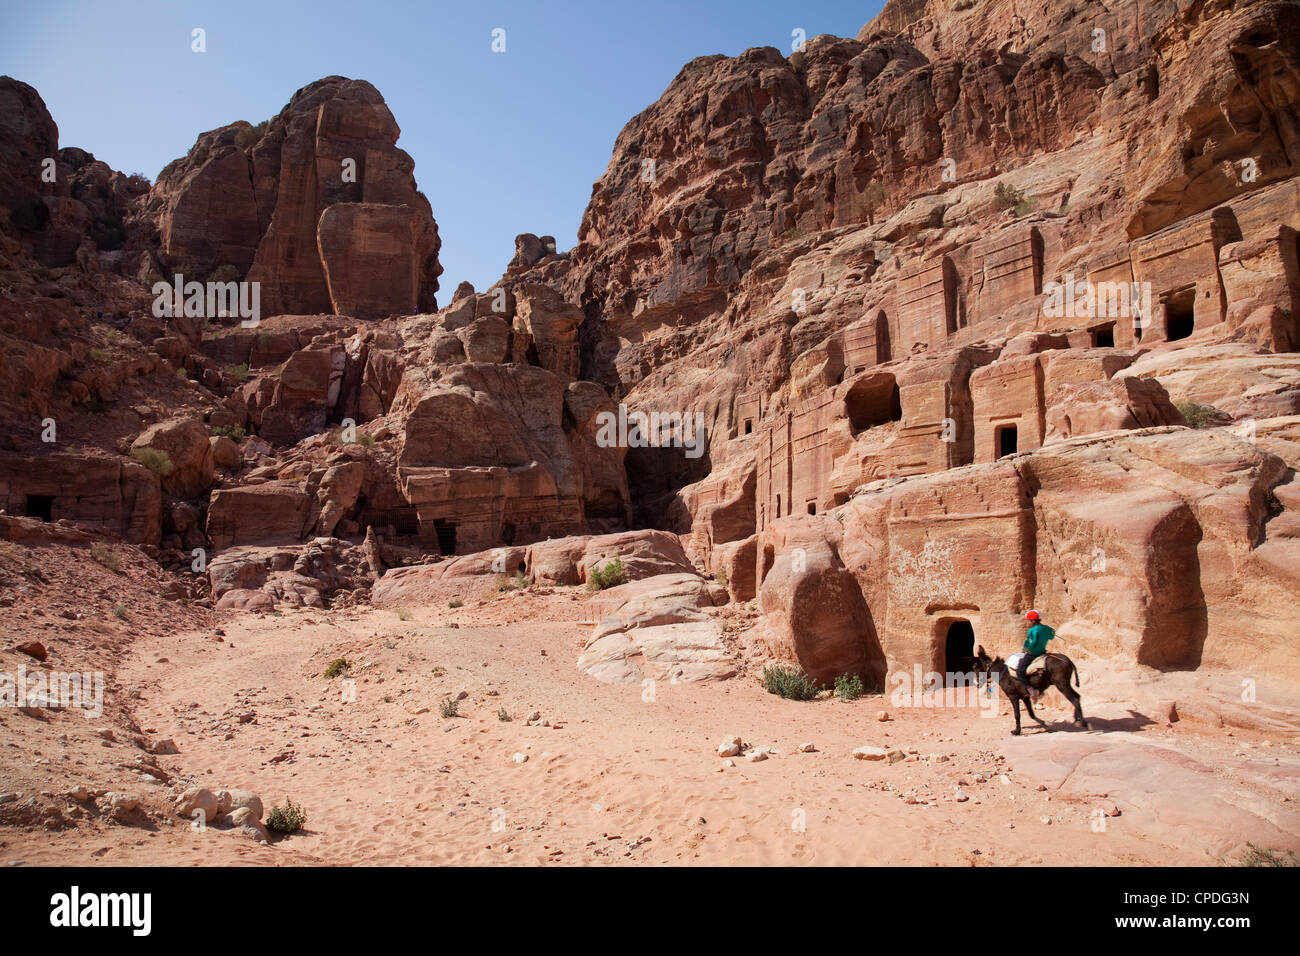 Child riding a donkey in front of cave dwellings in Petra, UNESCO World Heritage Site, Jordan, Middle East - Stock Image